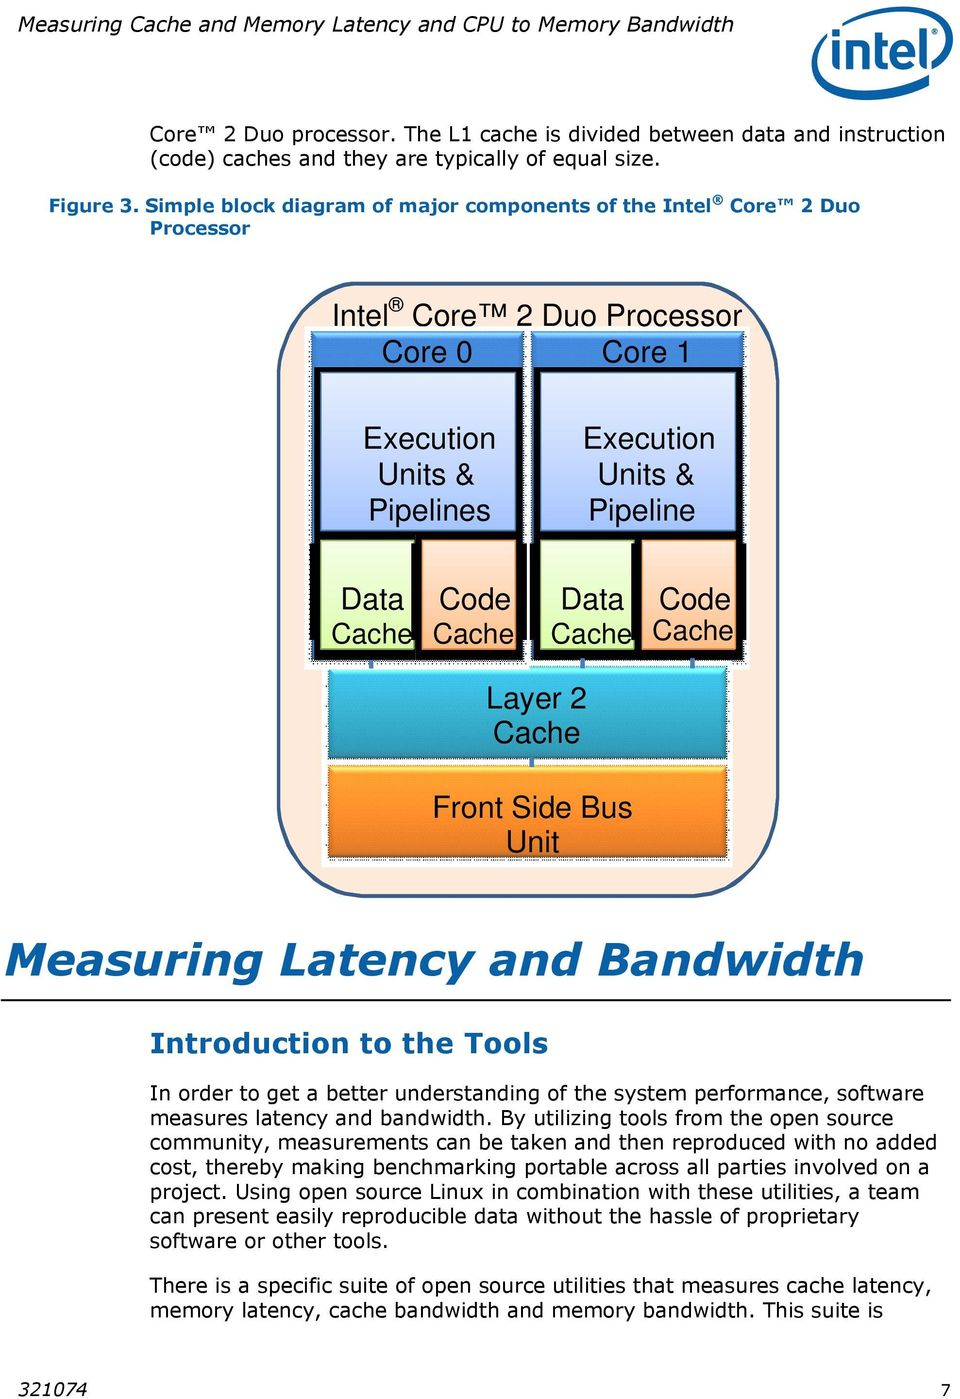 Measuring Cache and Memory Latency and CPU to Memory